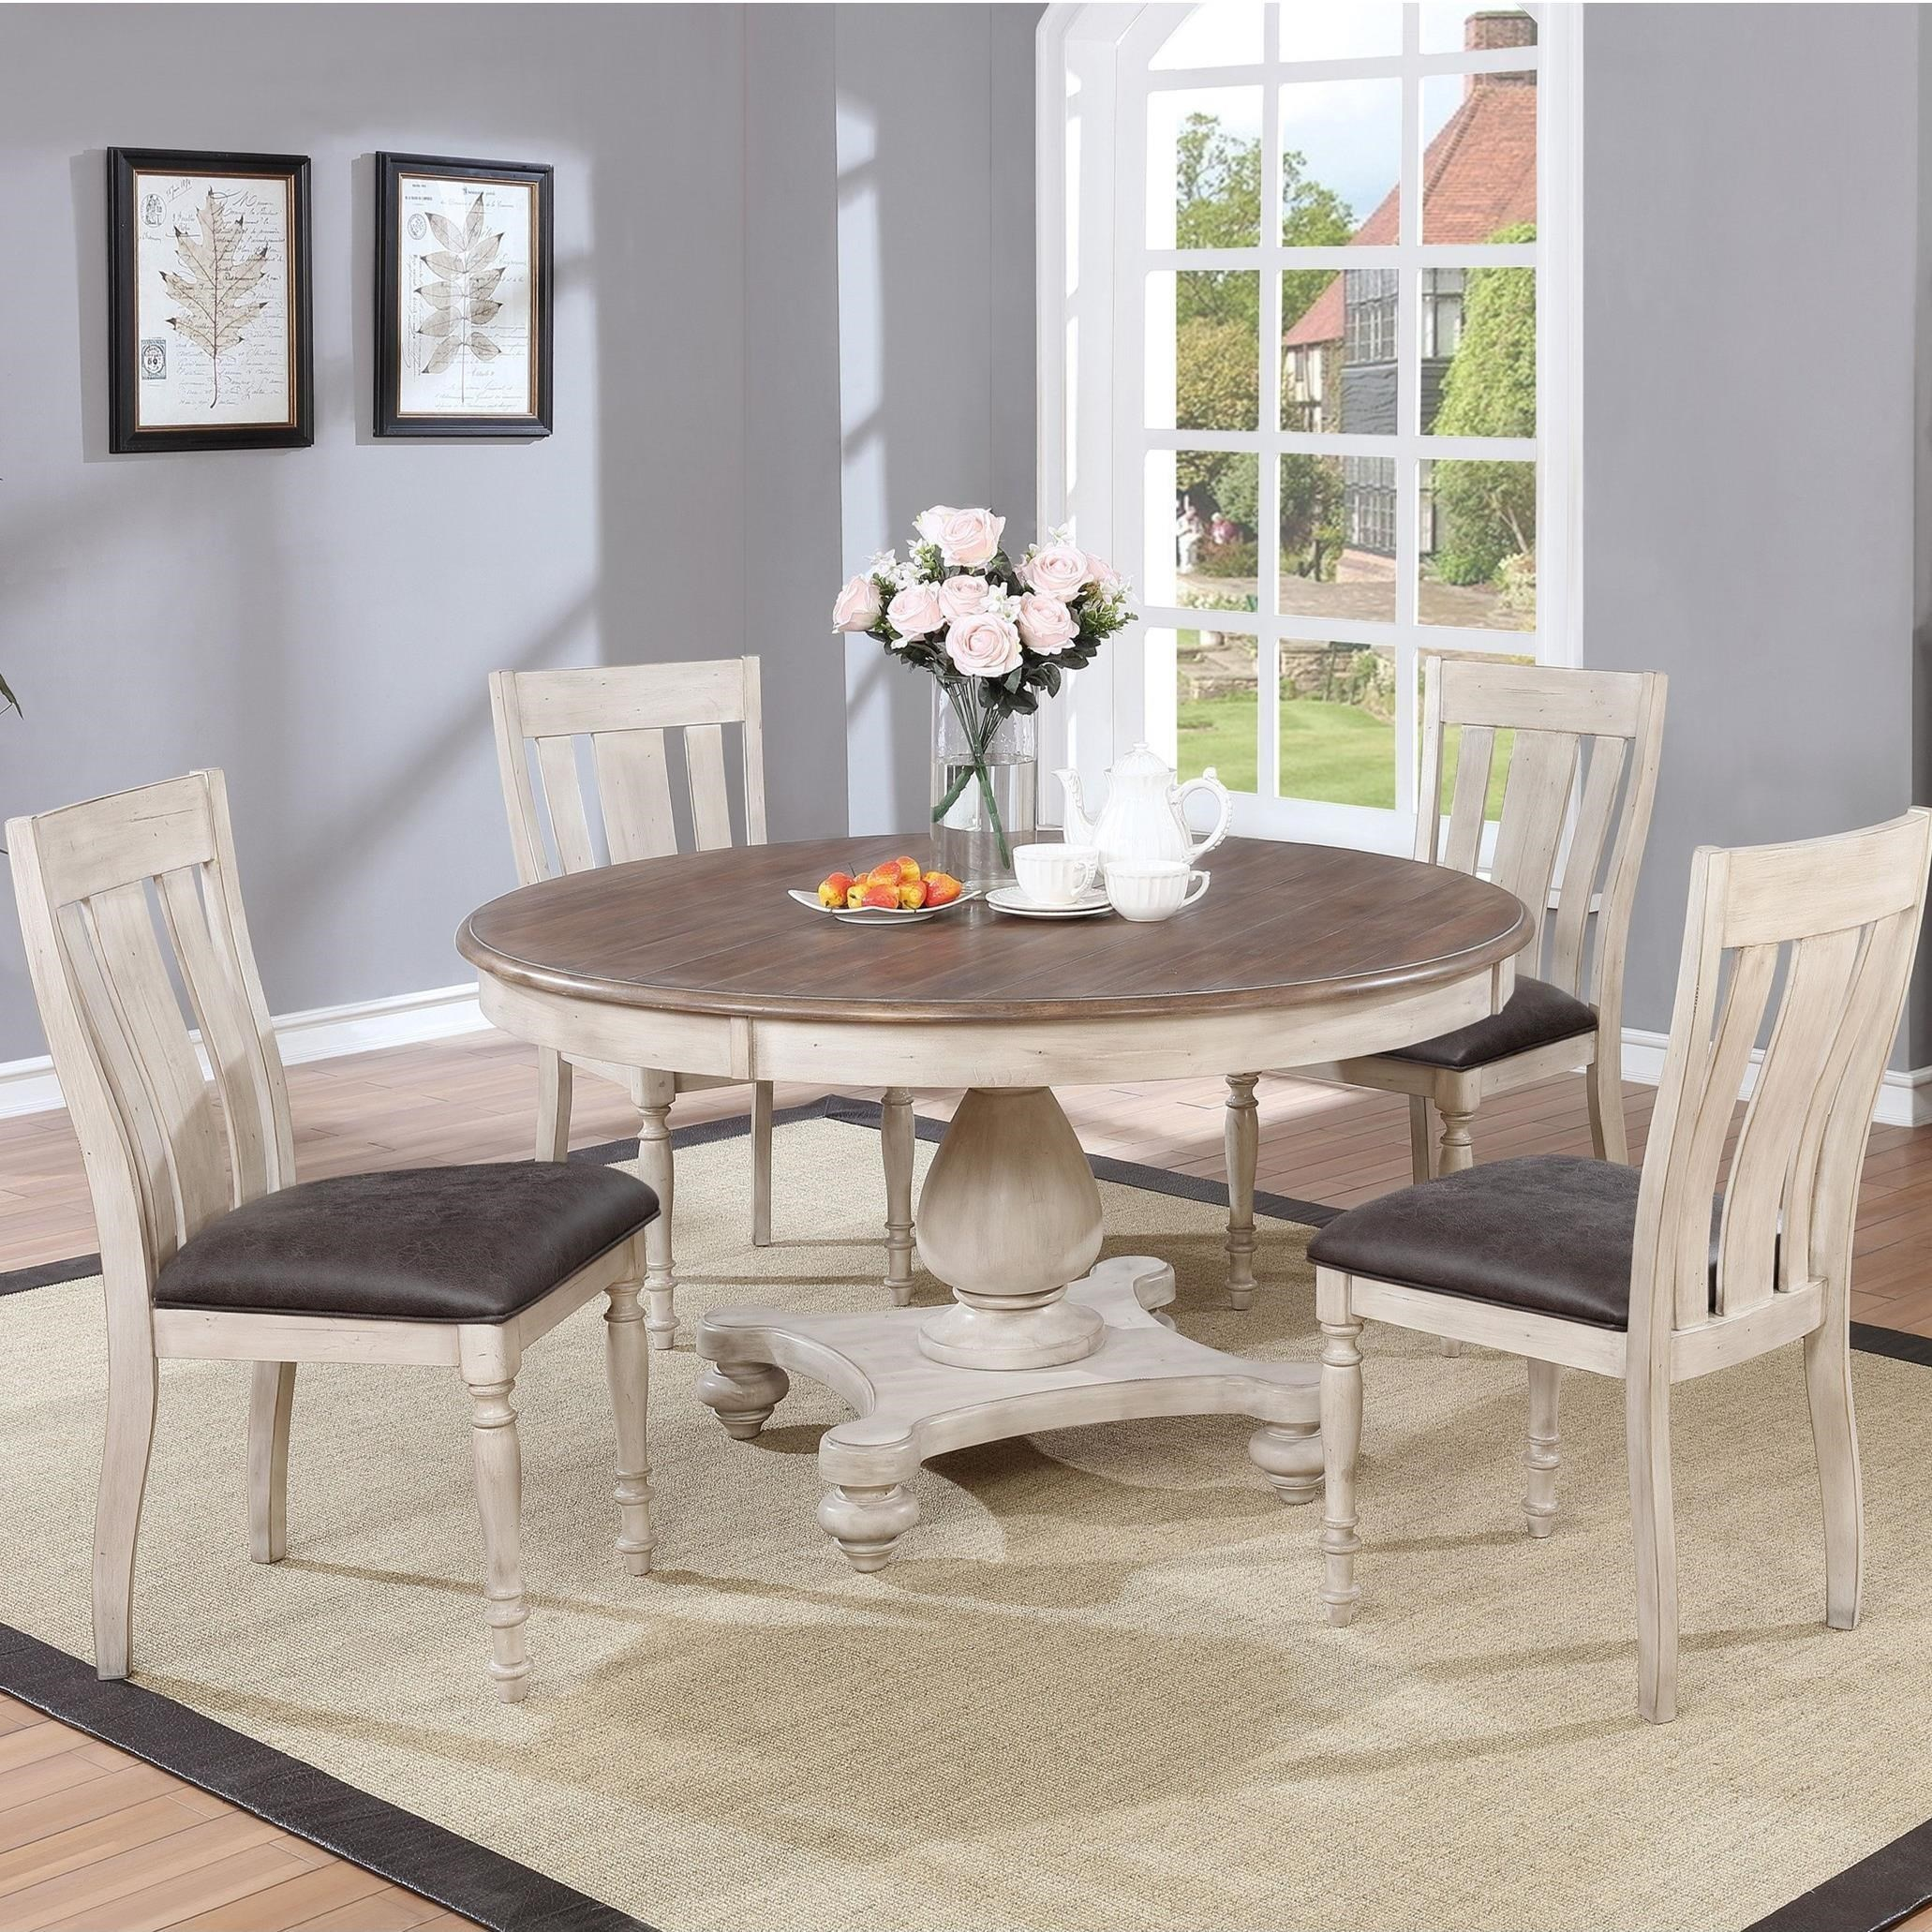 Dining Room Chair Sets Harlow 5pc Farmhouse Dining Table Chair Set By Lifestyle At Rotmans